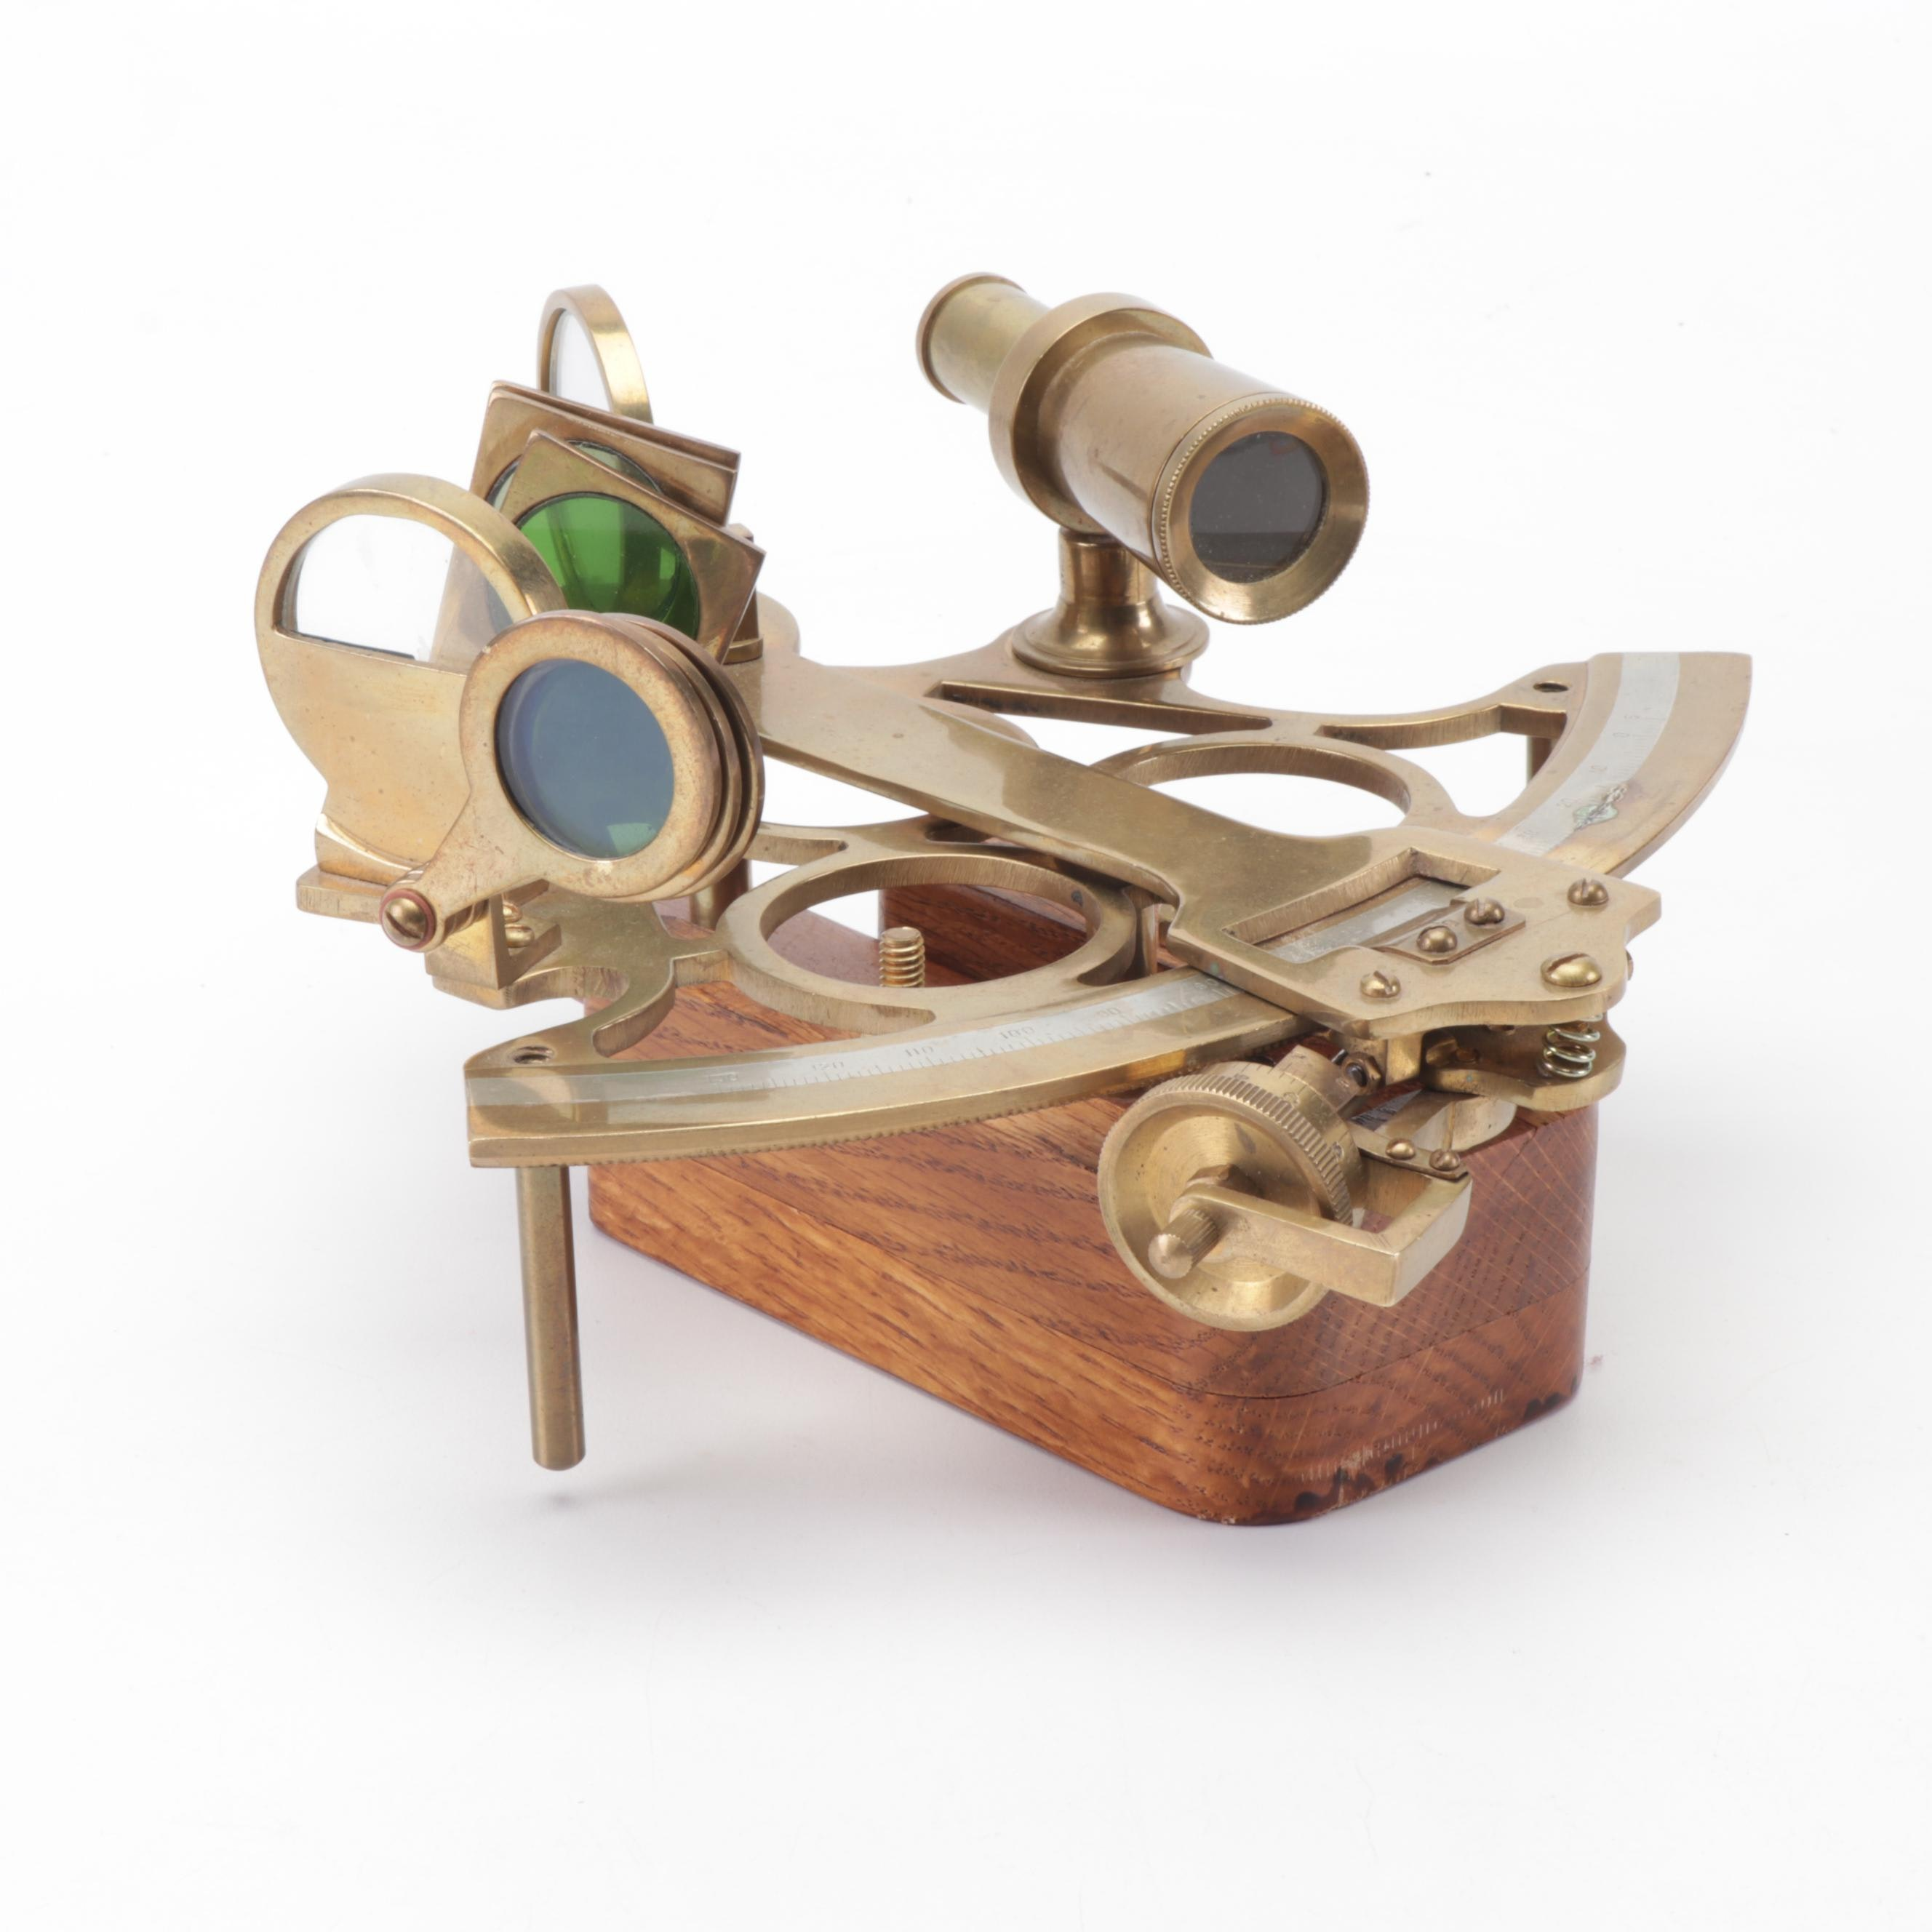 Brass Nautical Sextant with Wooden Stand